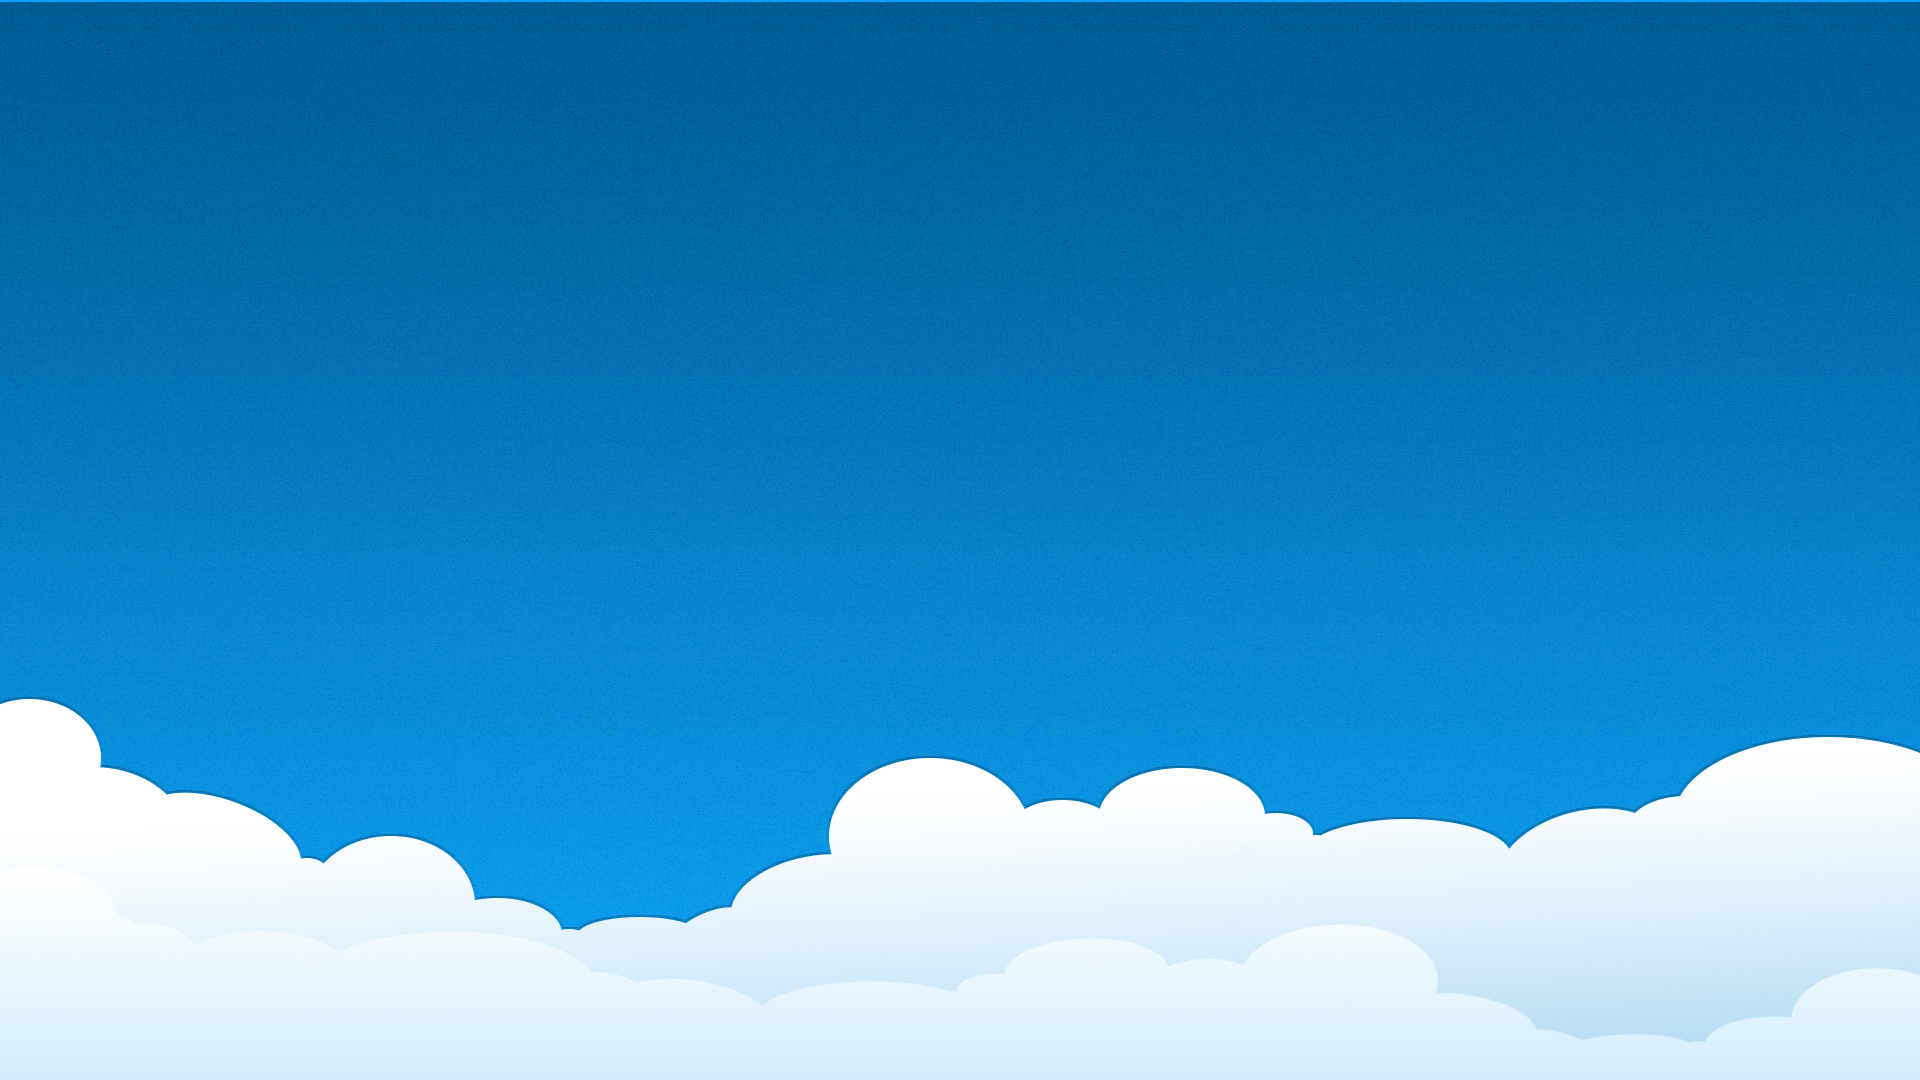 comwp contentuploads201312cloud wallpaper hd background 5png 1920x1080